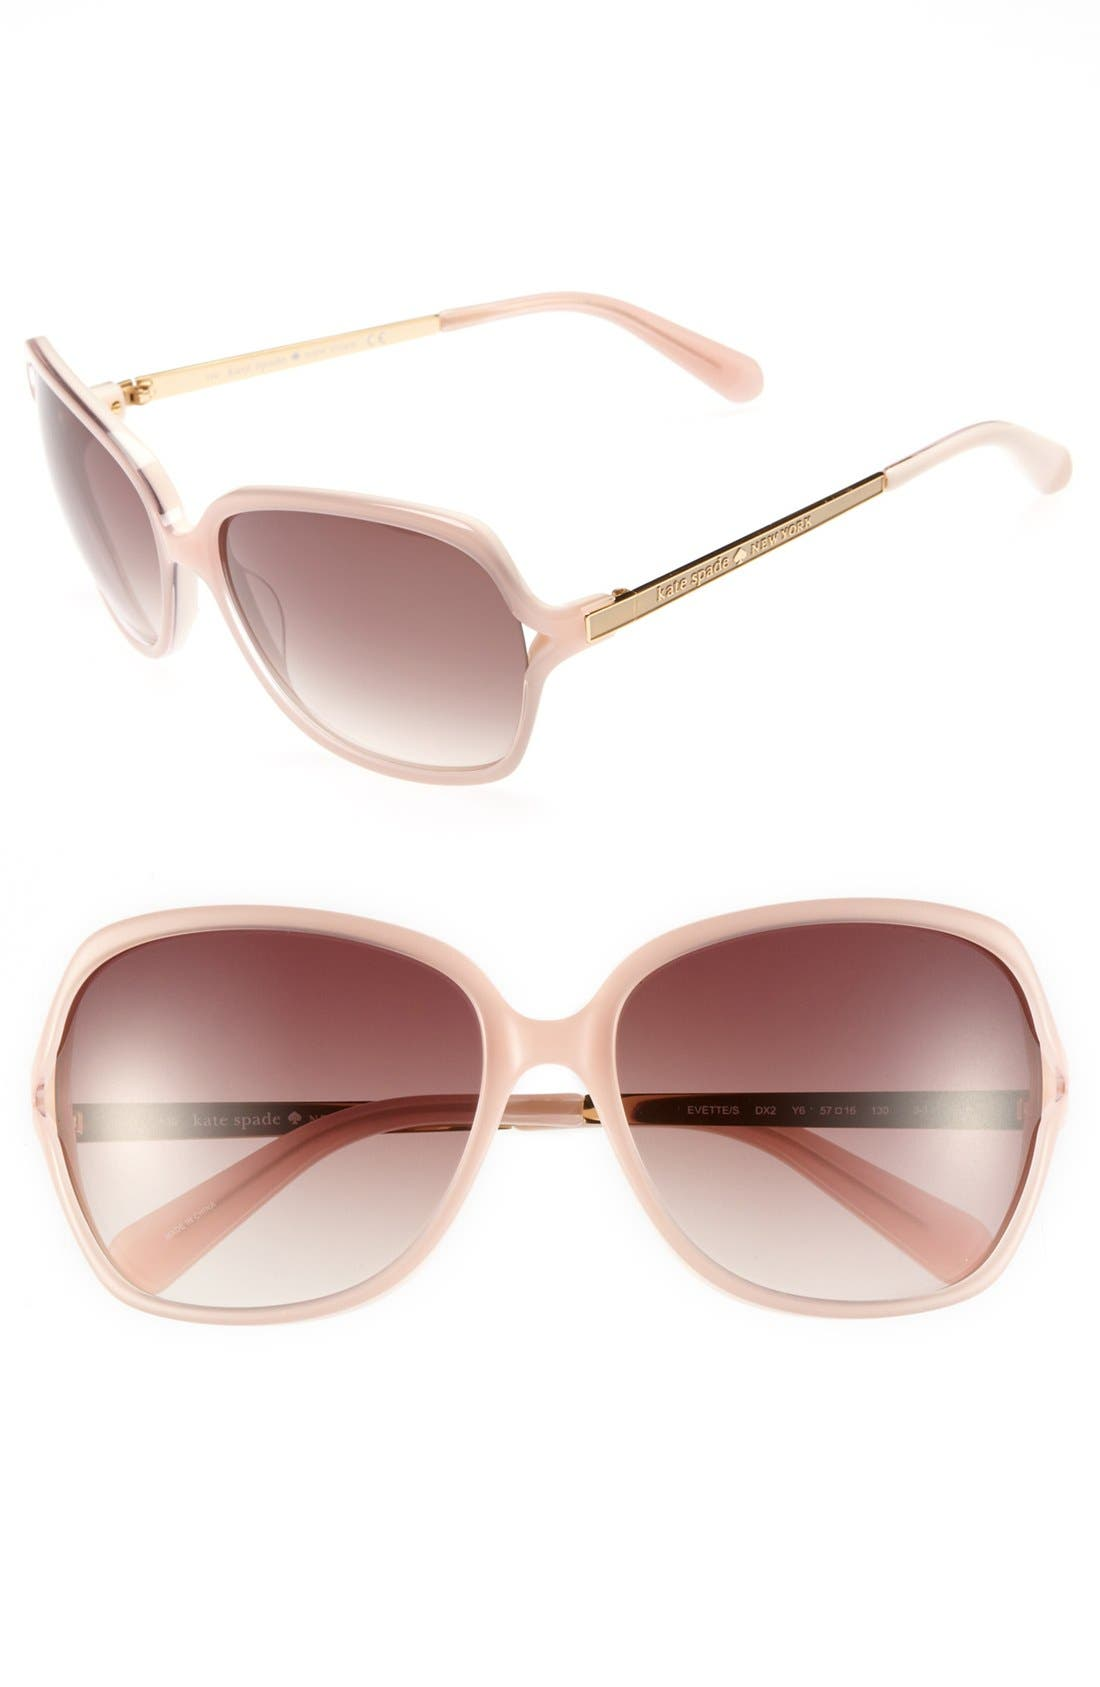 Alternate Image 1 Selected - kate spade new york 'evette' 57mm oversized sunglasses